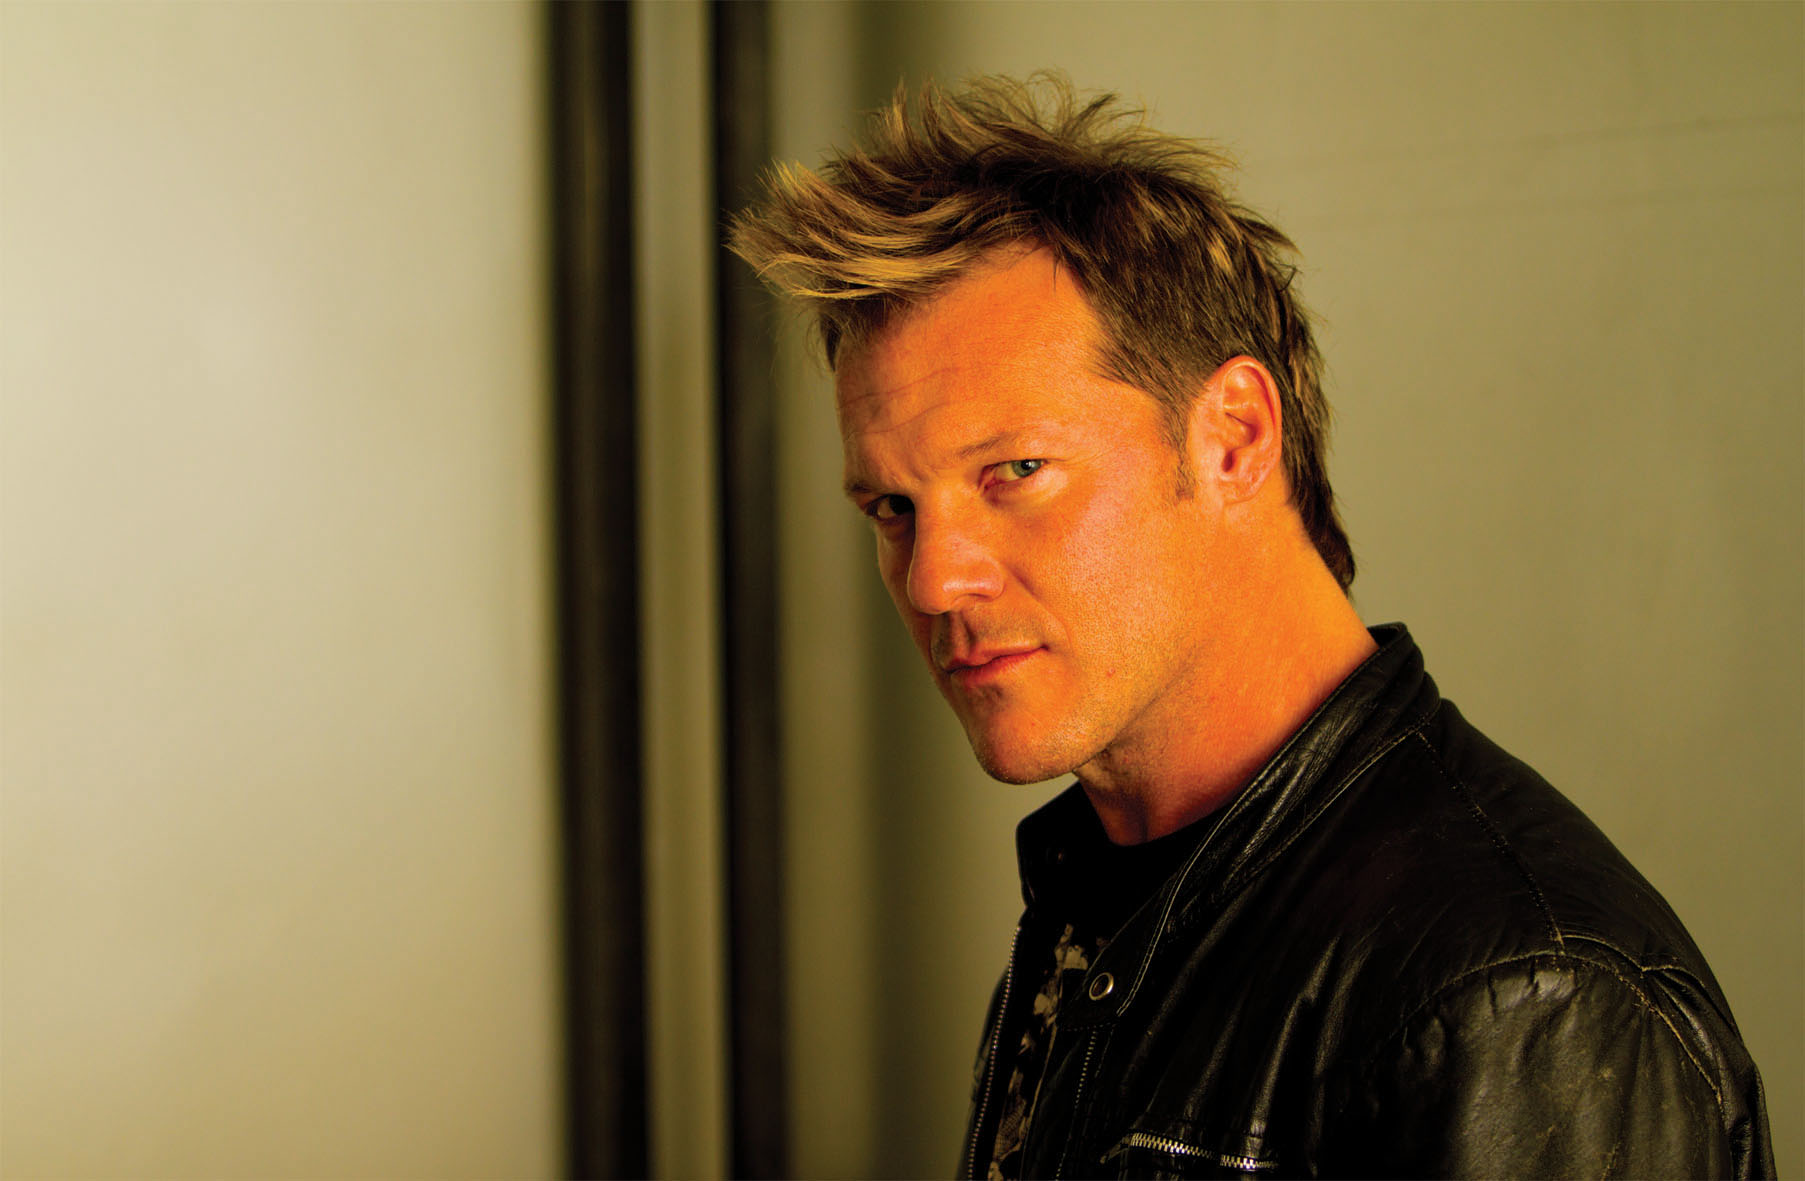 On The Line with Chris Jericho